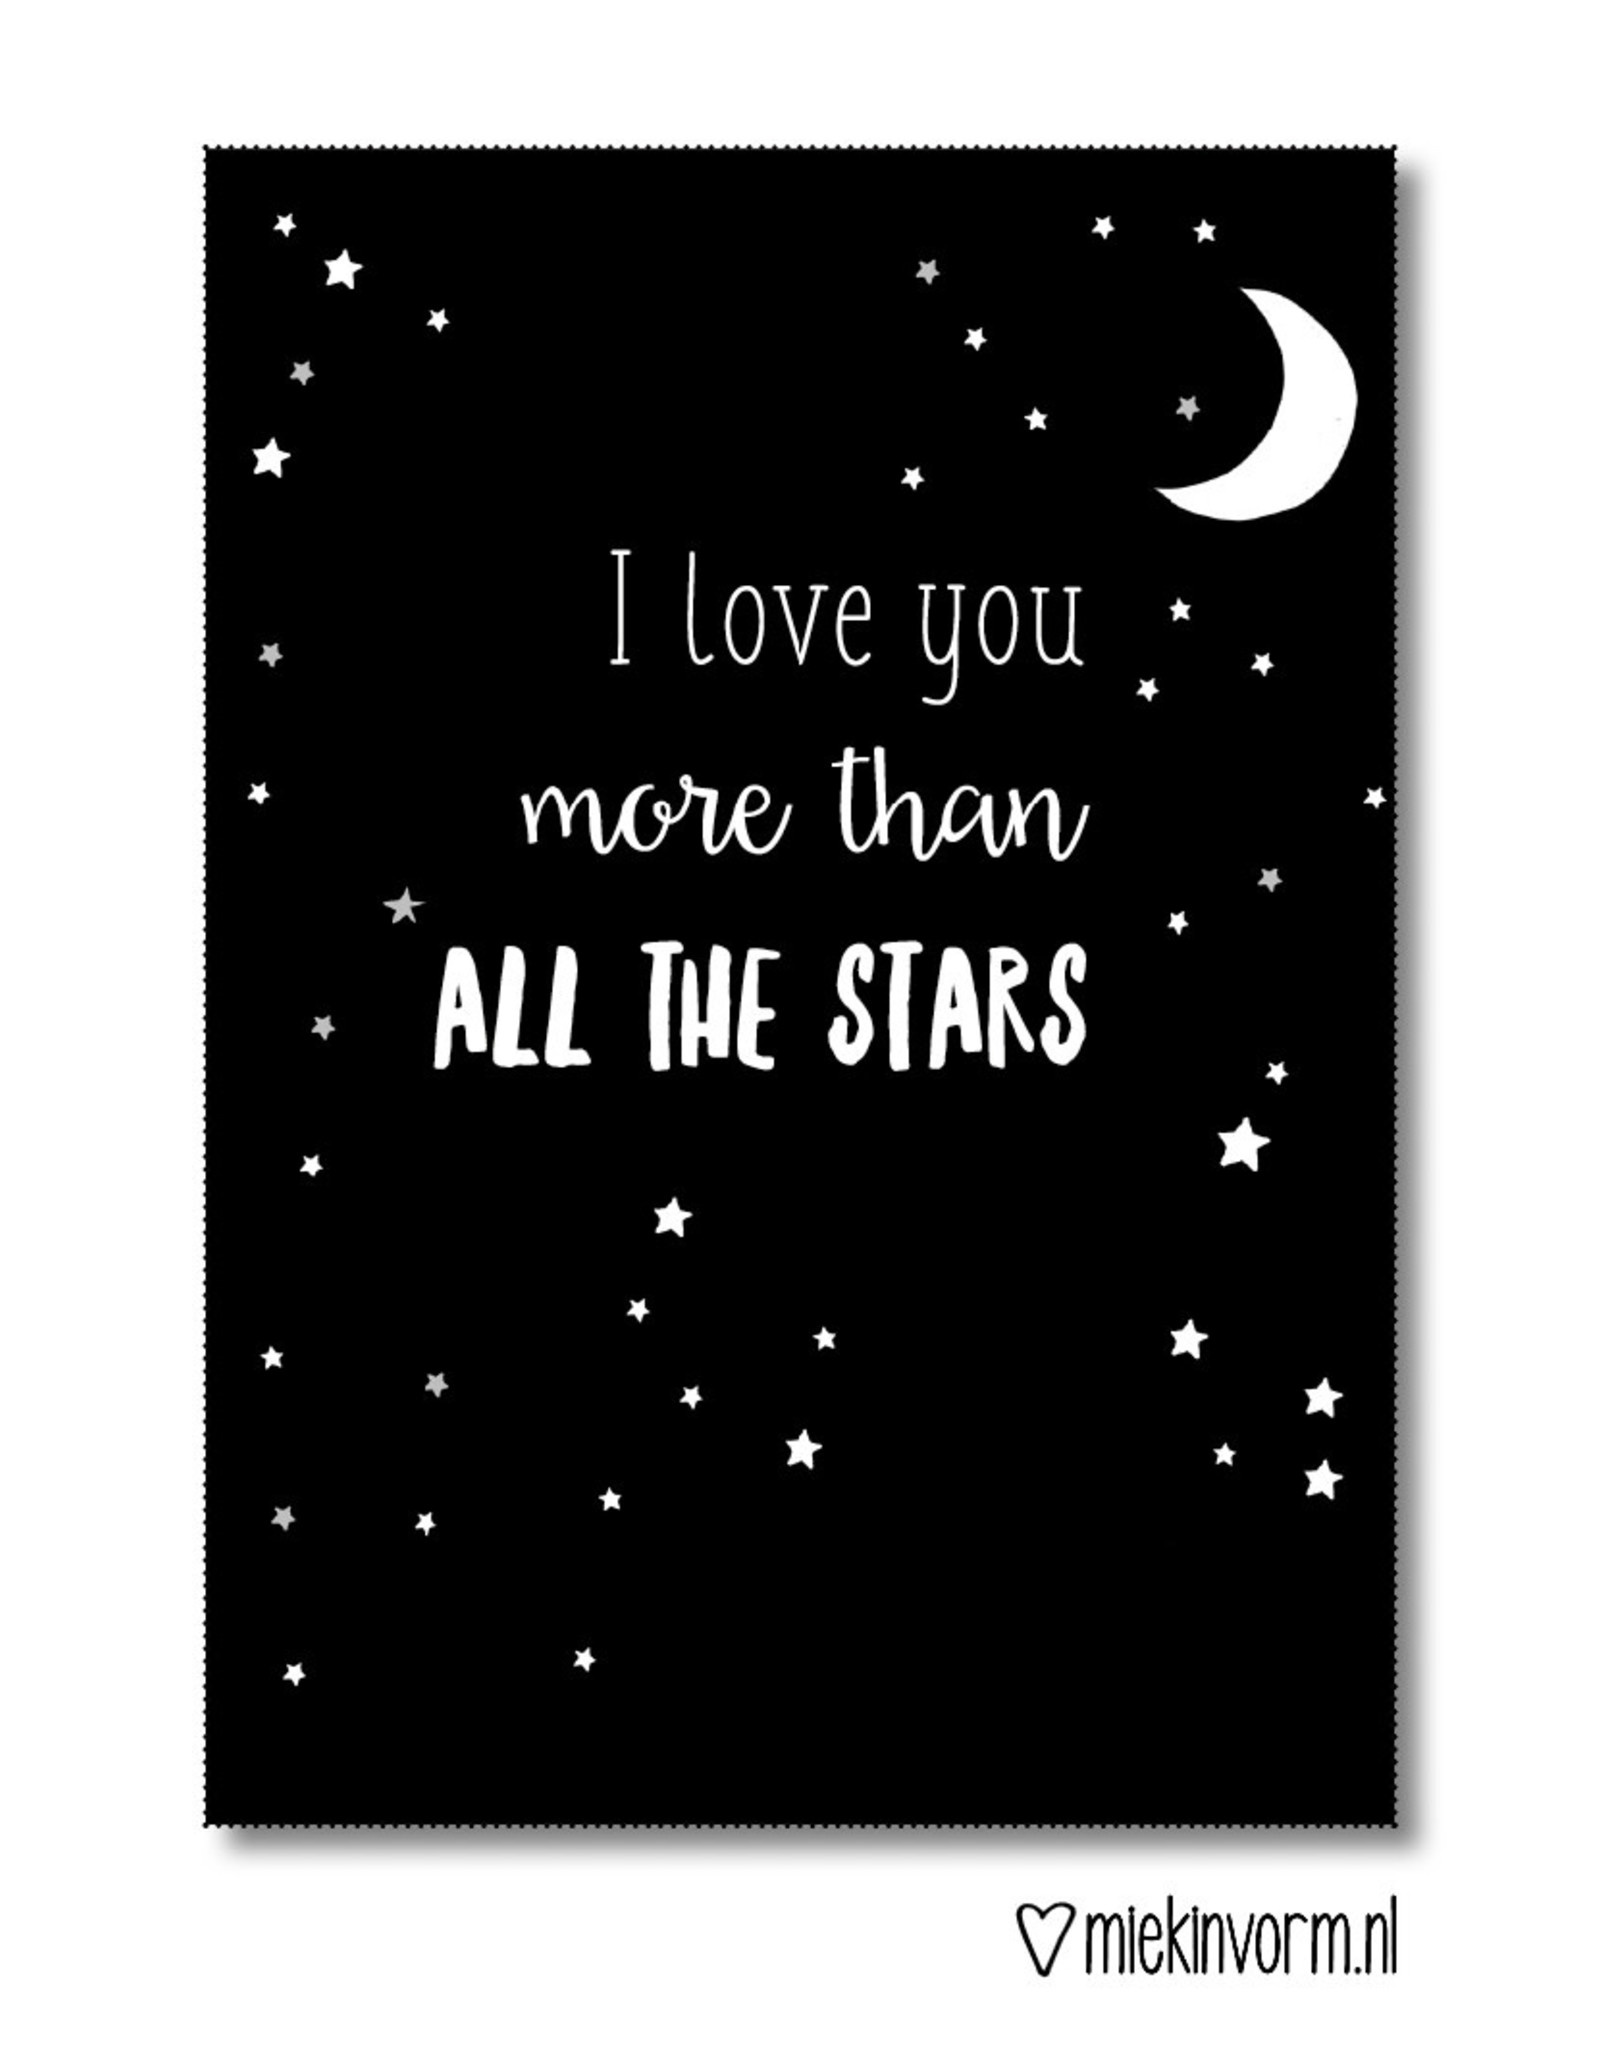 Miek in vorm kaart a6 miek in vorm: i love you more than all the stars